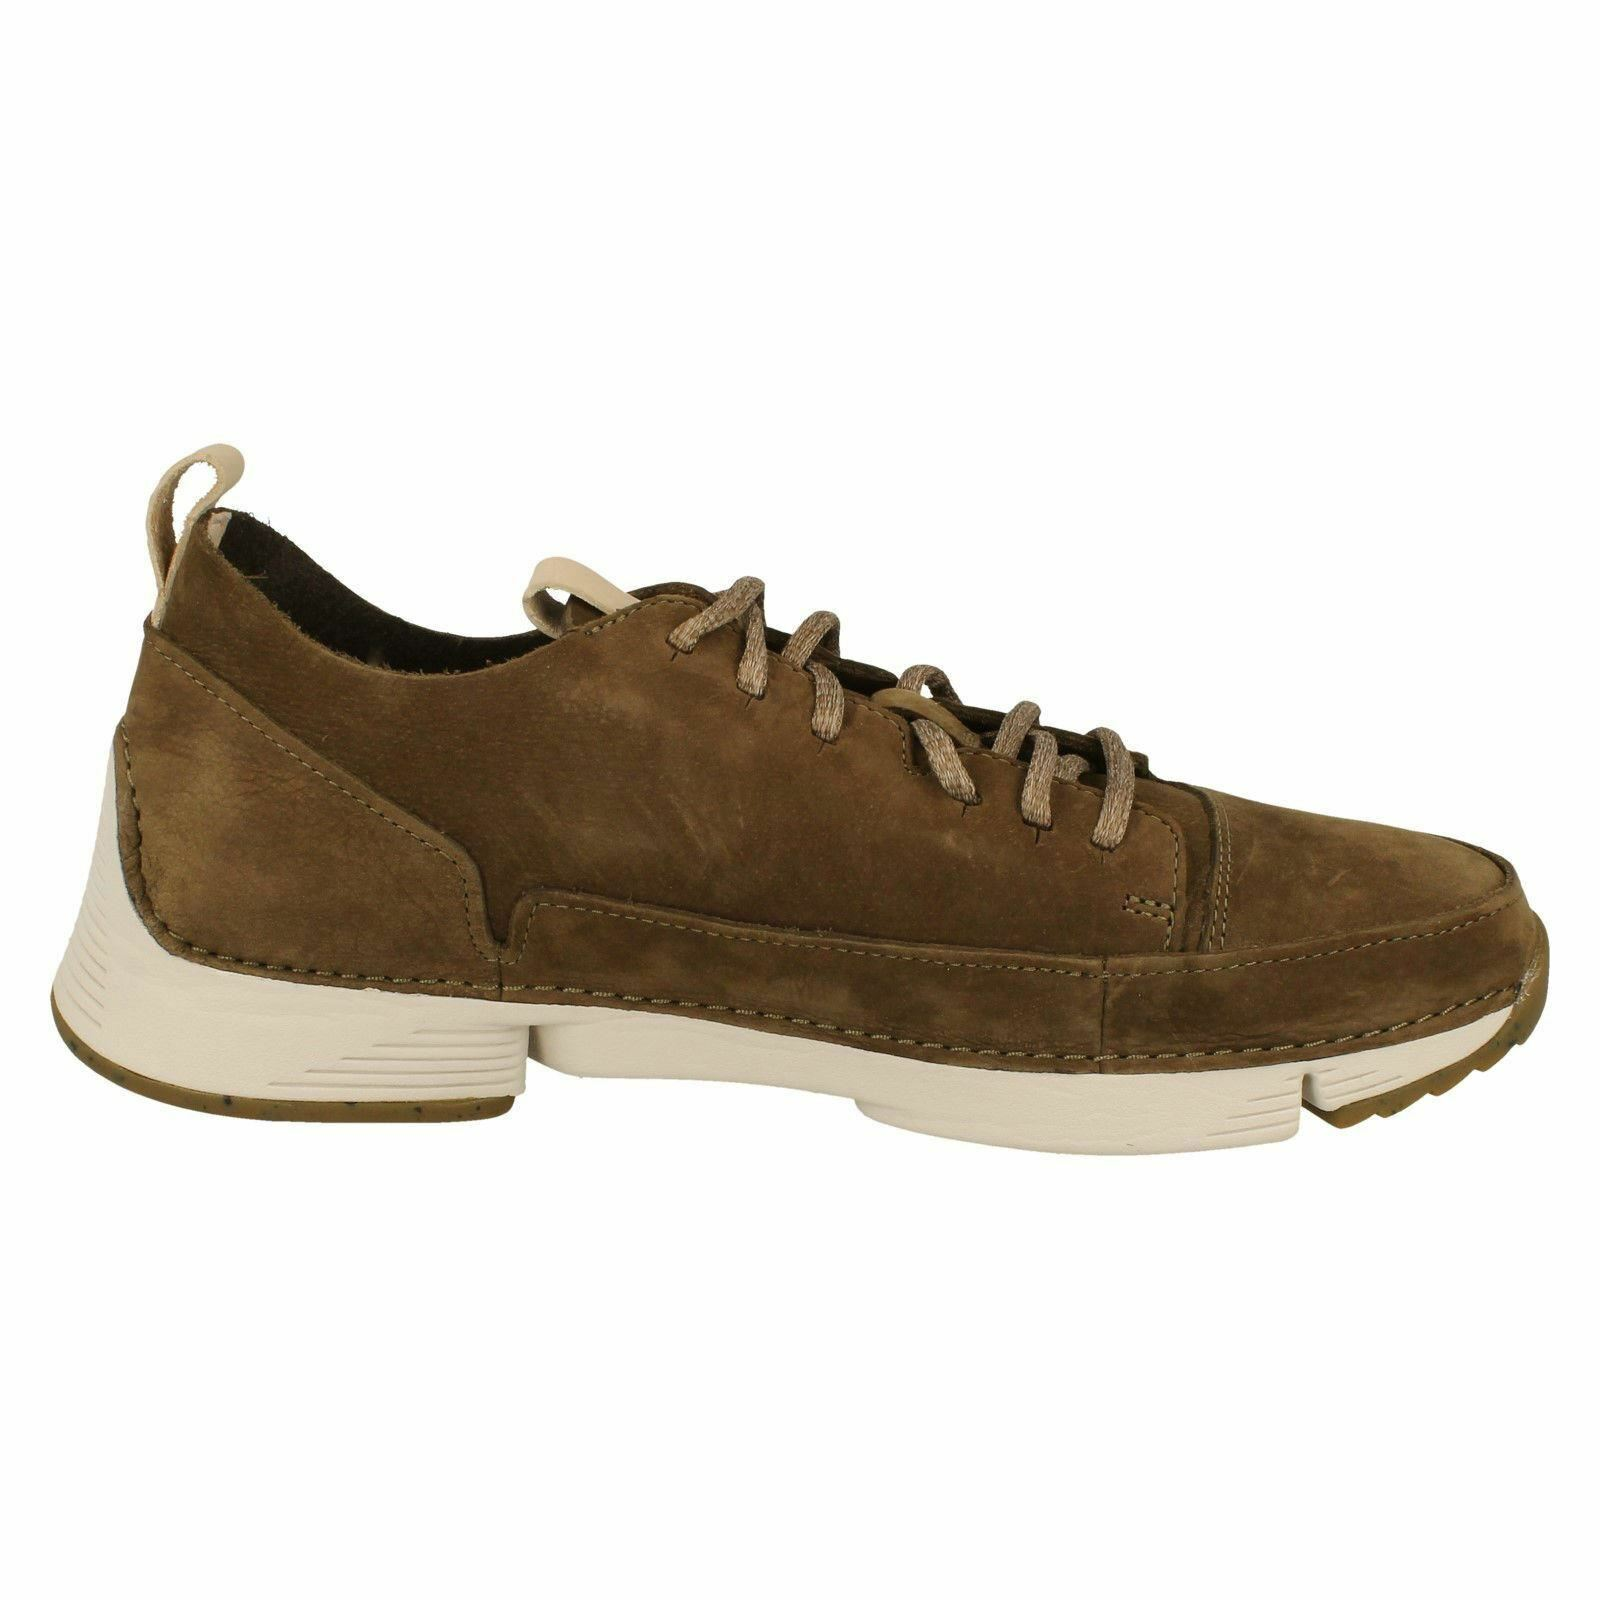 Tri Spark Homme Clarks Kaki Lacets Casual Casual Lacets Coussin Sports Baskets Chaussures Taille eb27dc